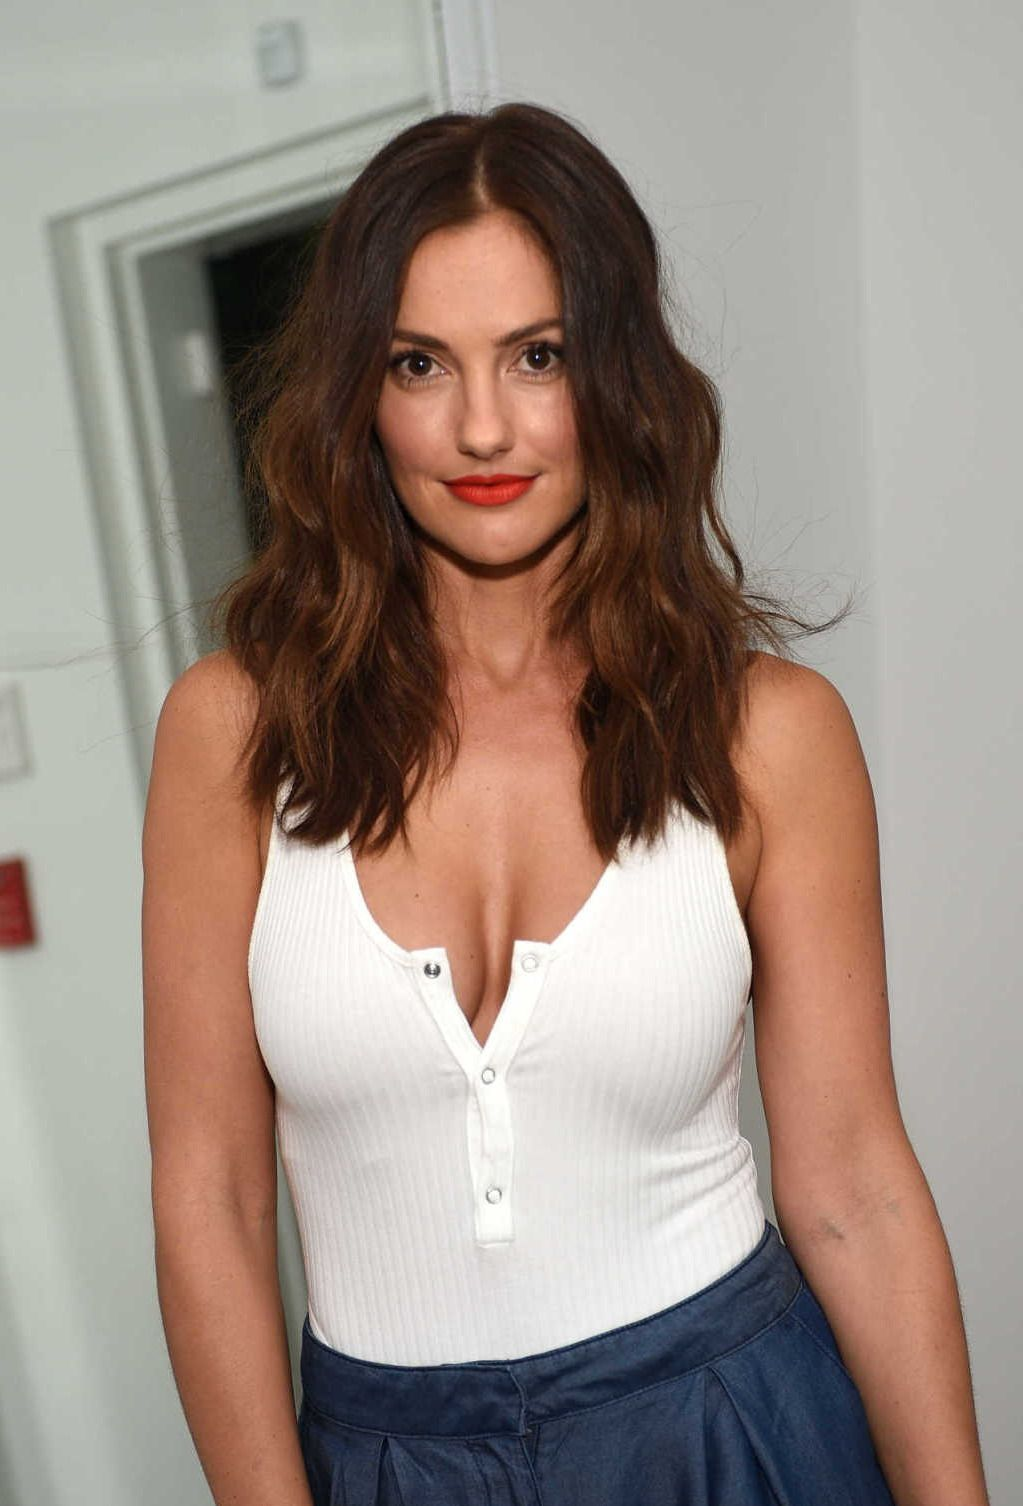 minka kelly hot pics